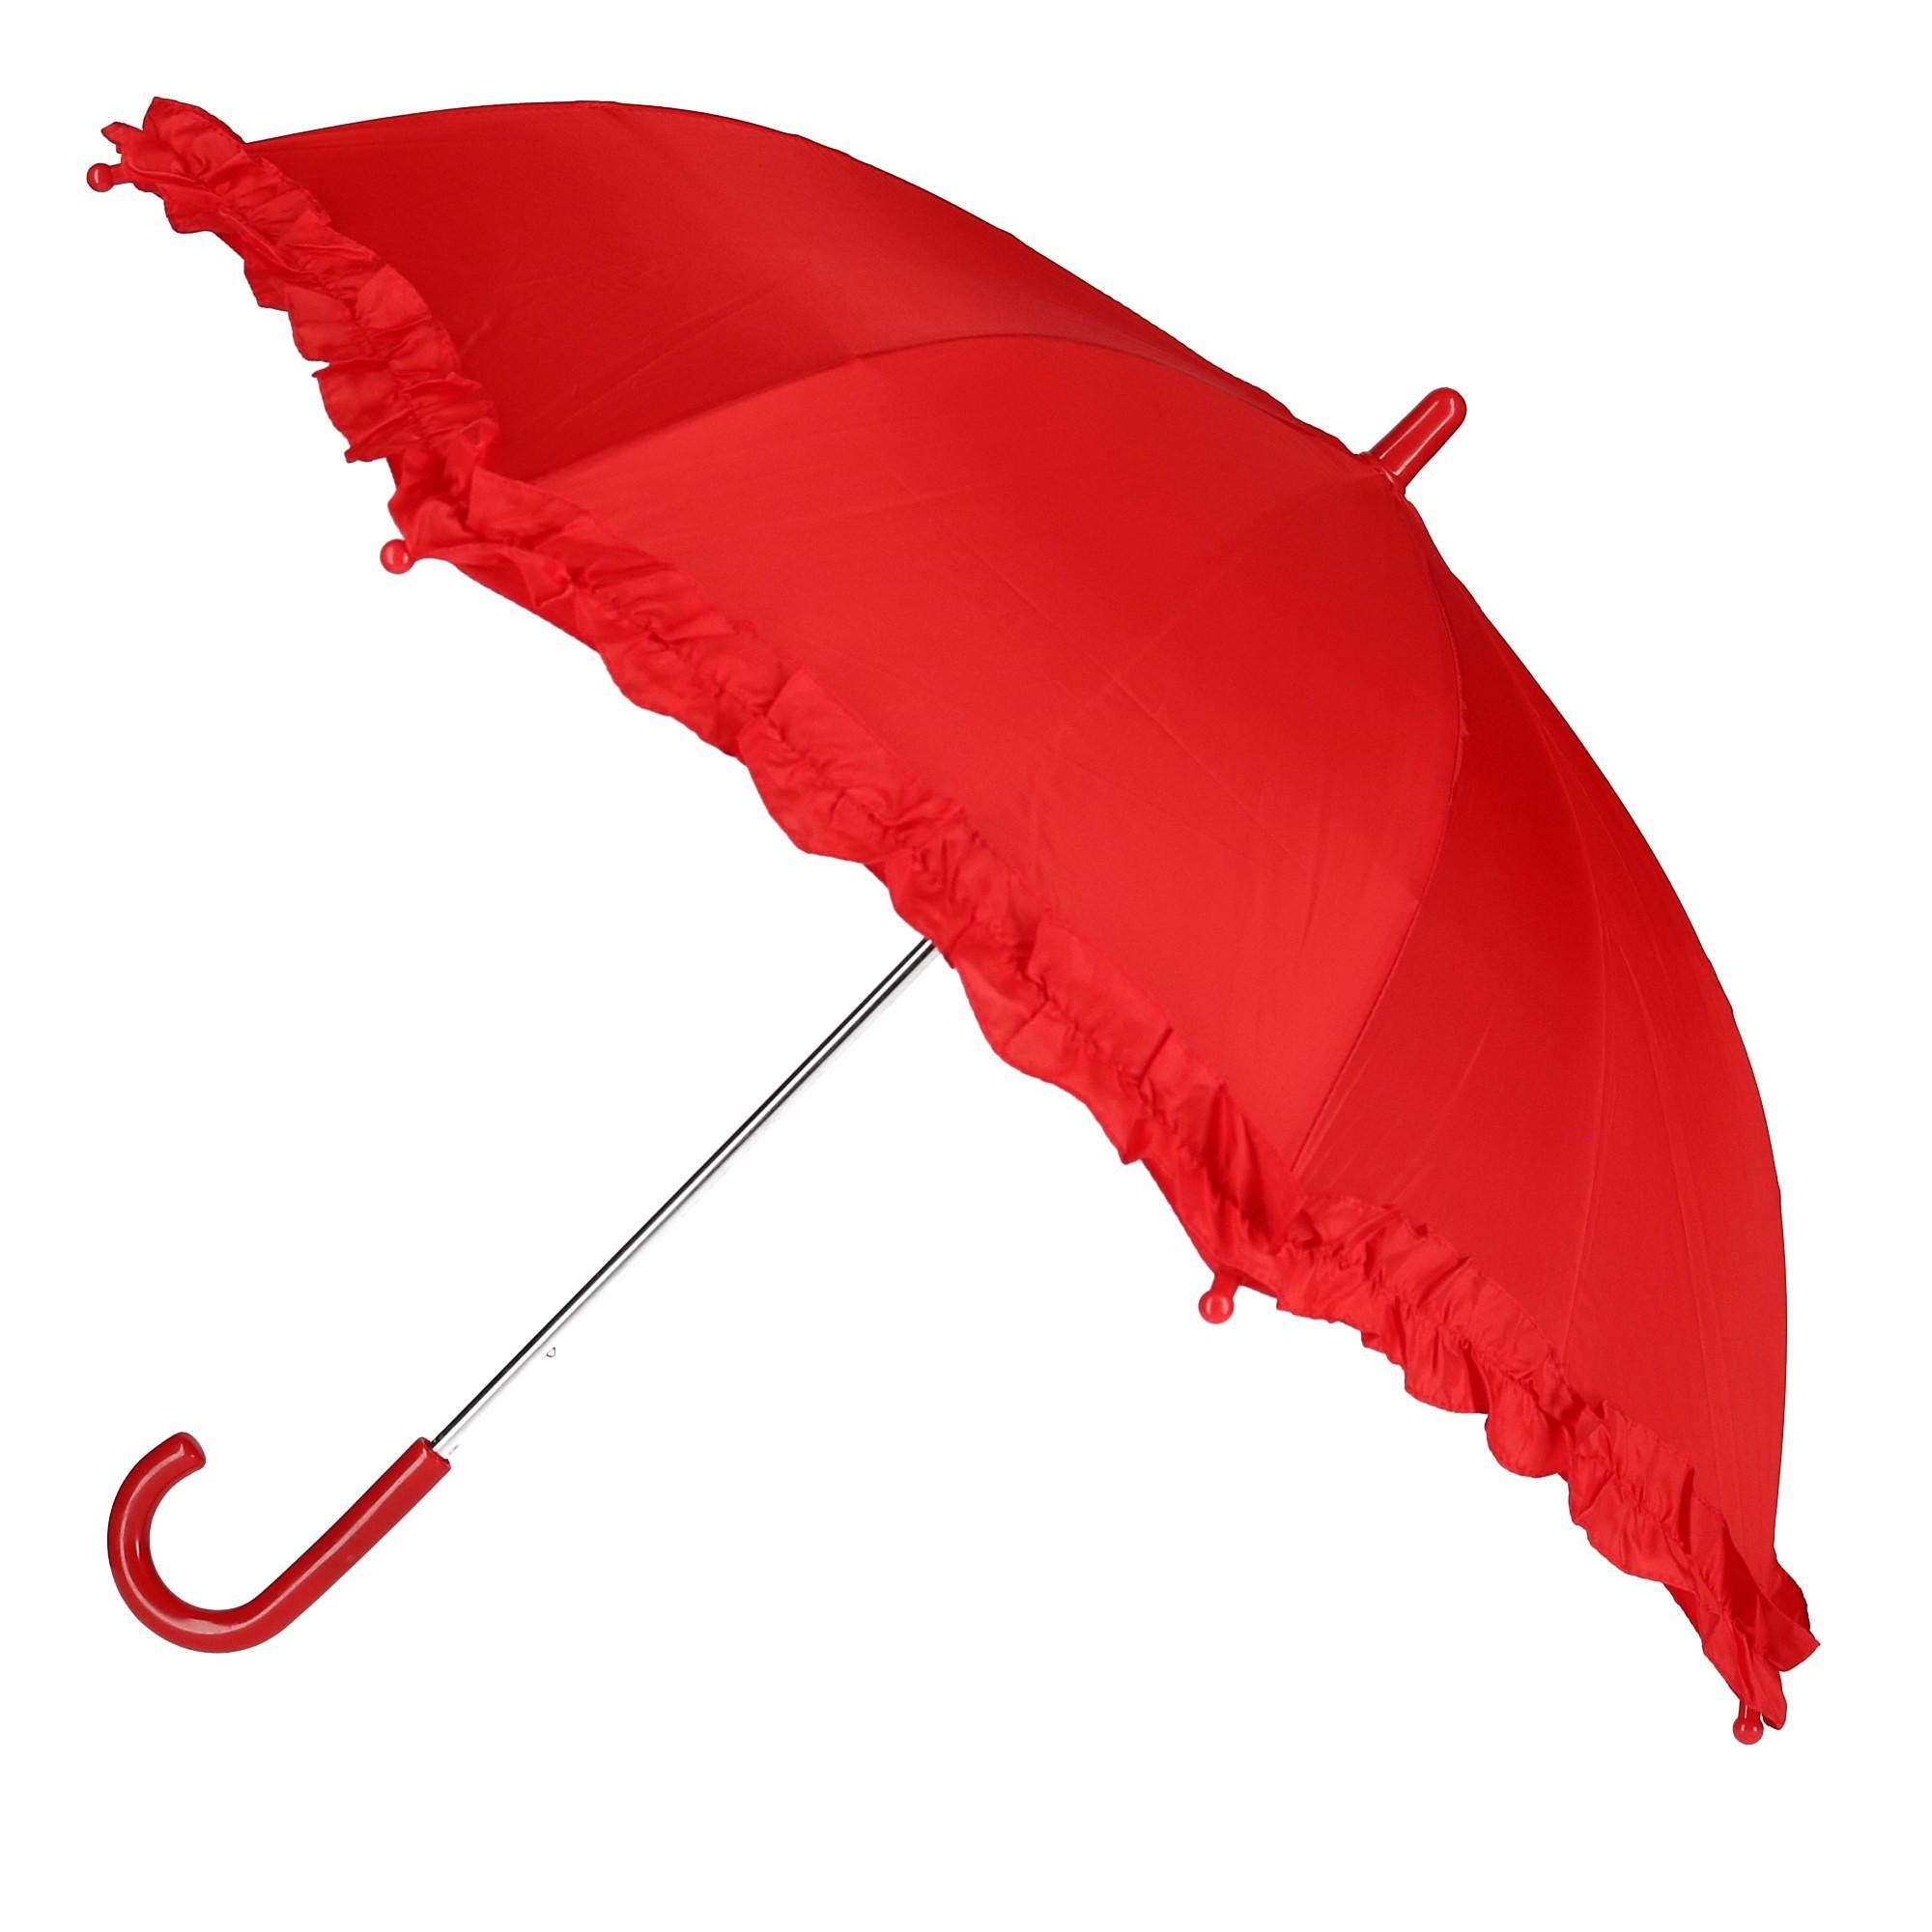 CTM Kid's Solid Color Stick Umbrella with Ruffle, Red